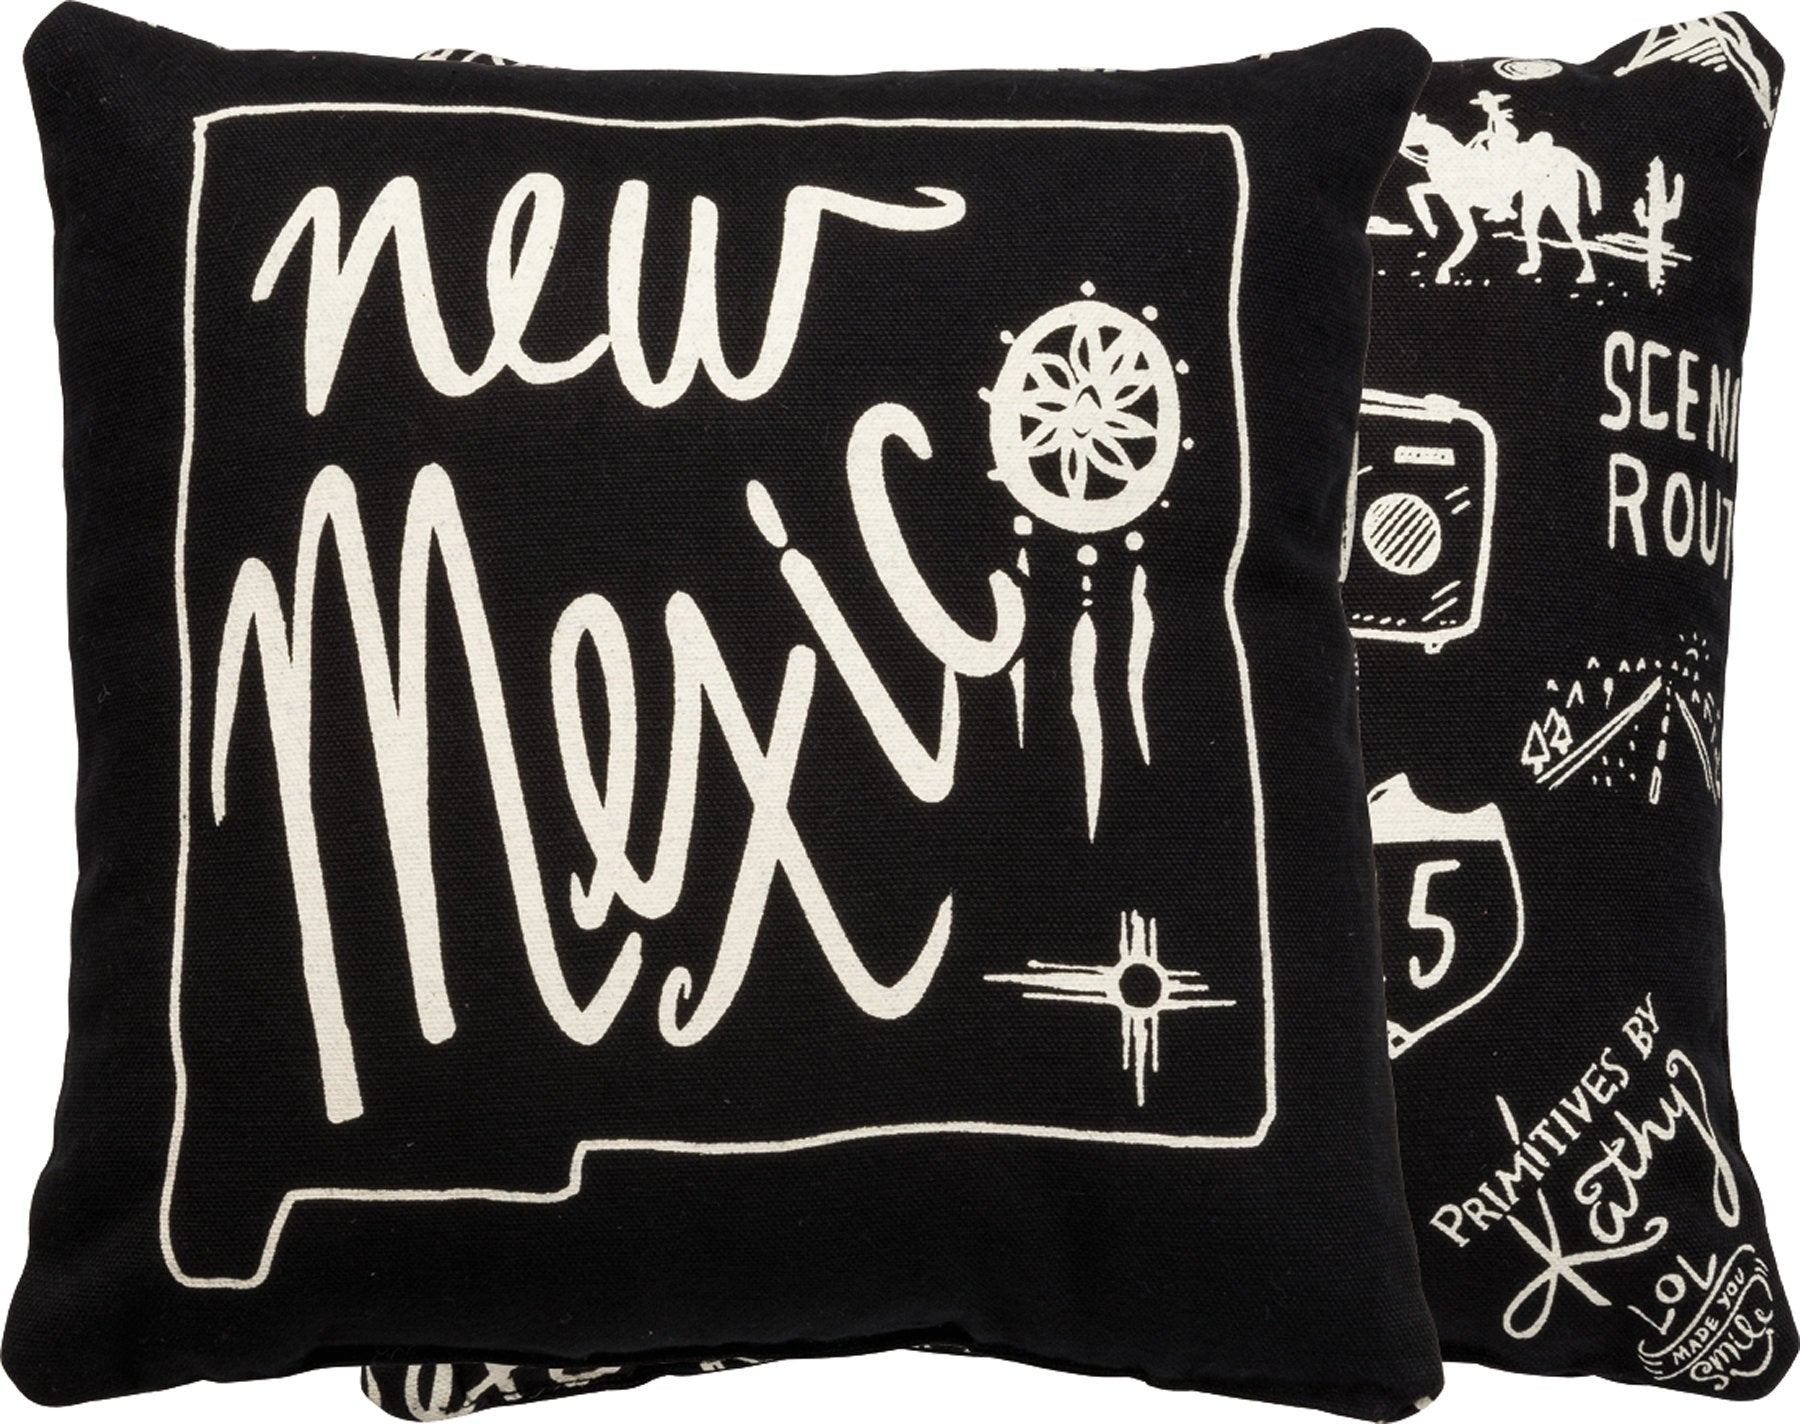 New Mexico | Throw Pillow | 10x10 | Modern Coastal Decor | Beach House Decor | Primitive Decor | Pillow | Travel | New Mexico State | NM